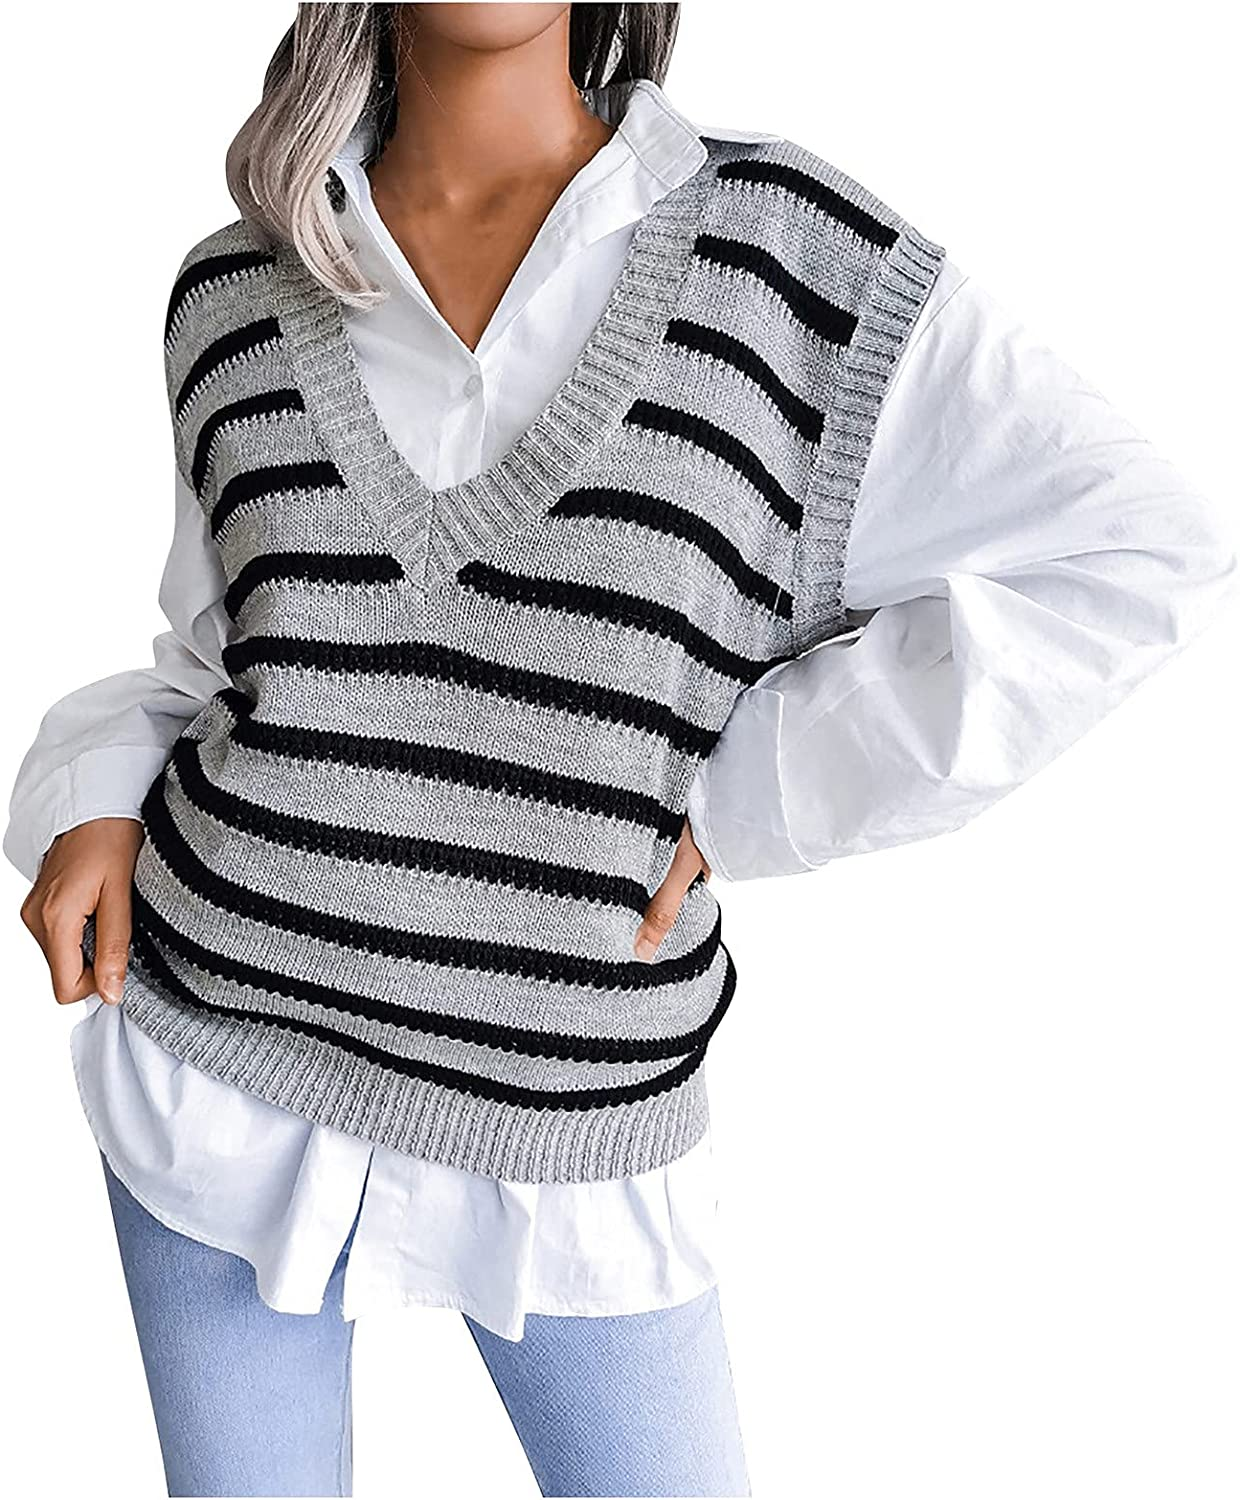 KINGAOGGO V Neck Striped Sweater Vest Women Hollow Thin Section Pullover Sweaters Fashion Knitted Vests Gray,Blue